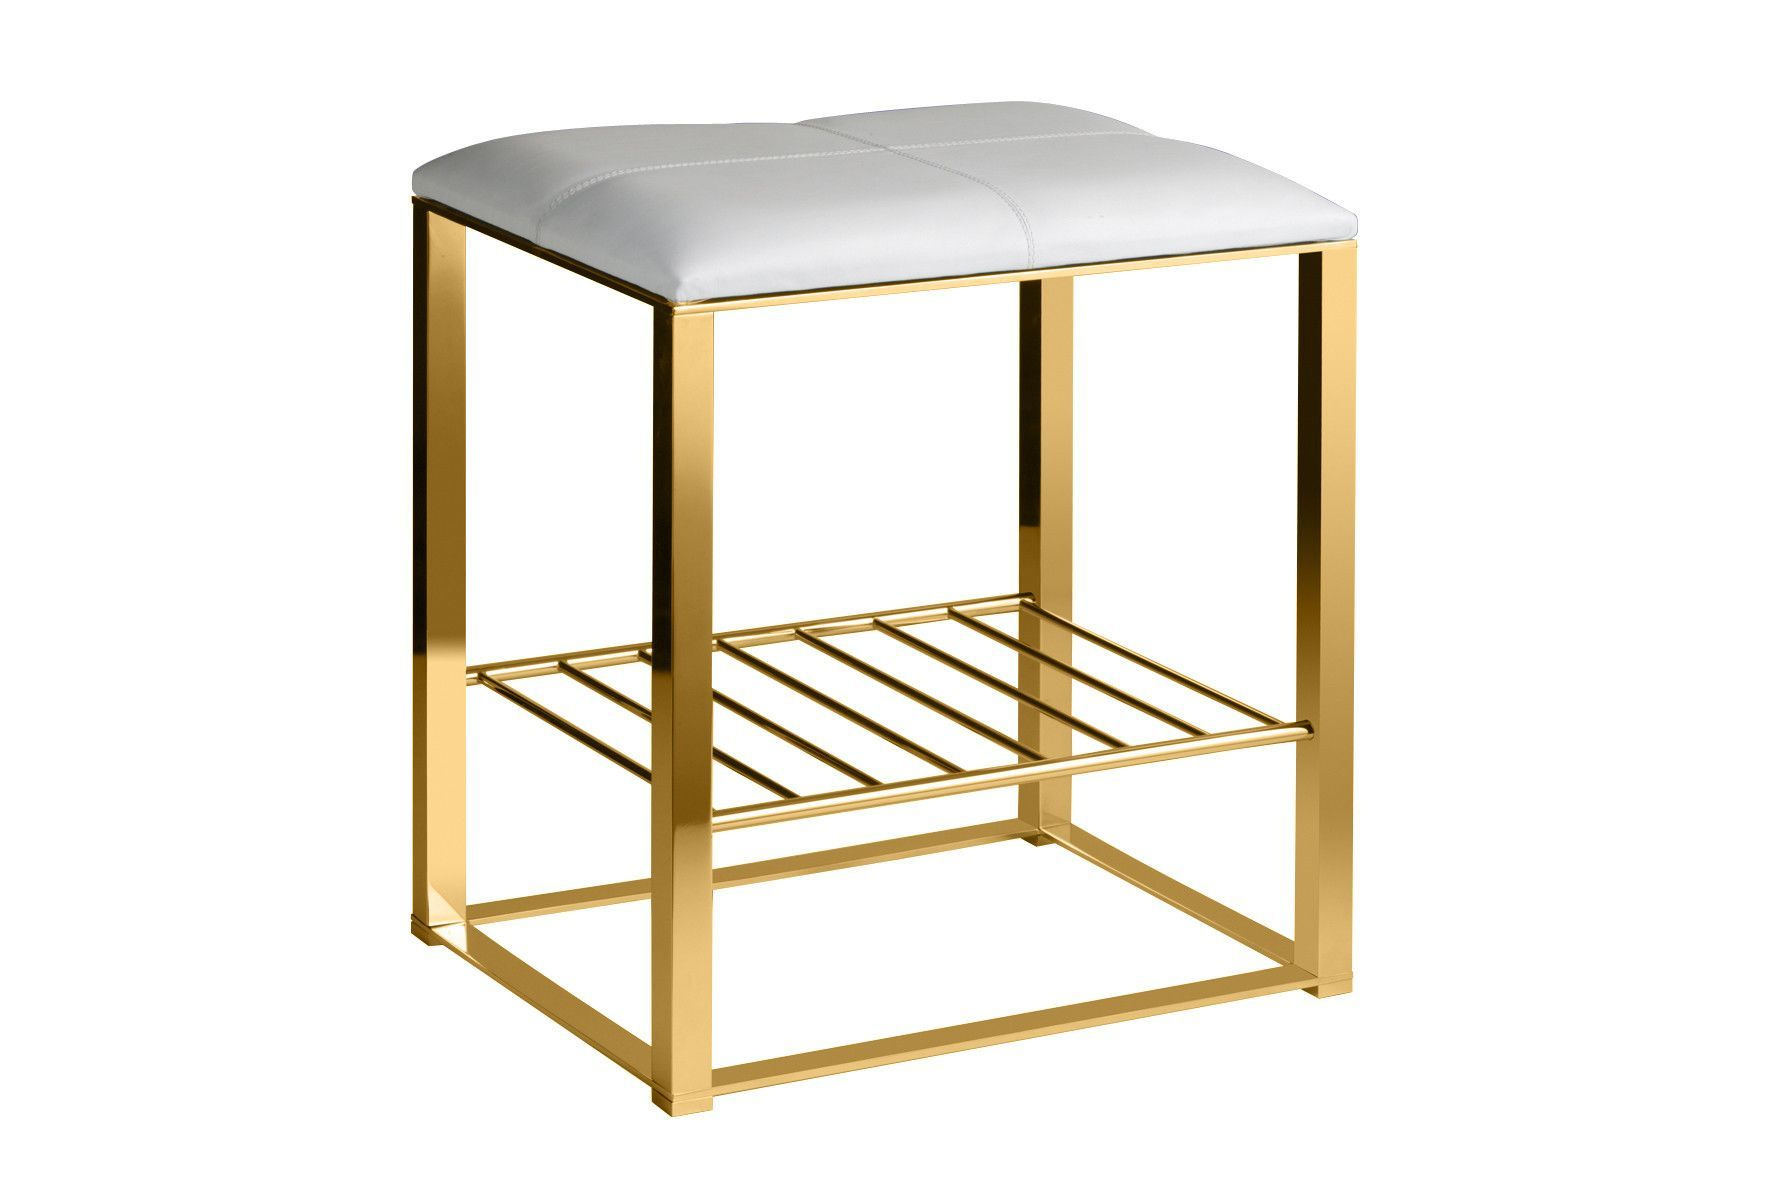 Backless Vanity Stool Bench, Brass Metal Legs, Leather Seat And Storage  Shelf